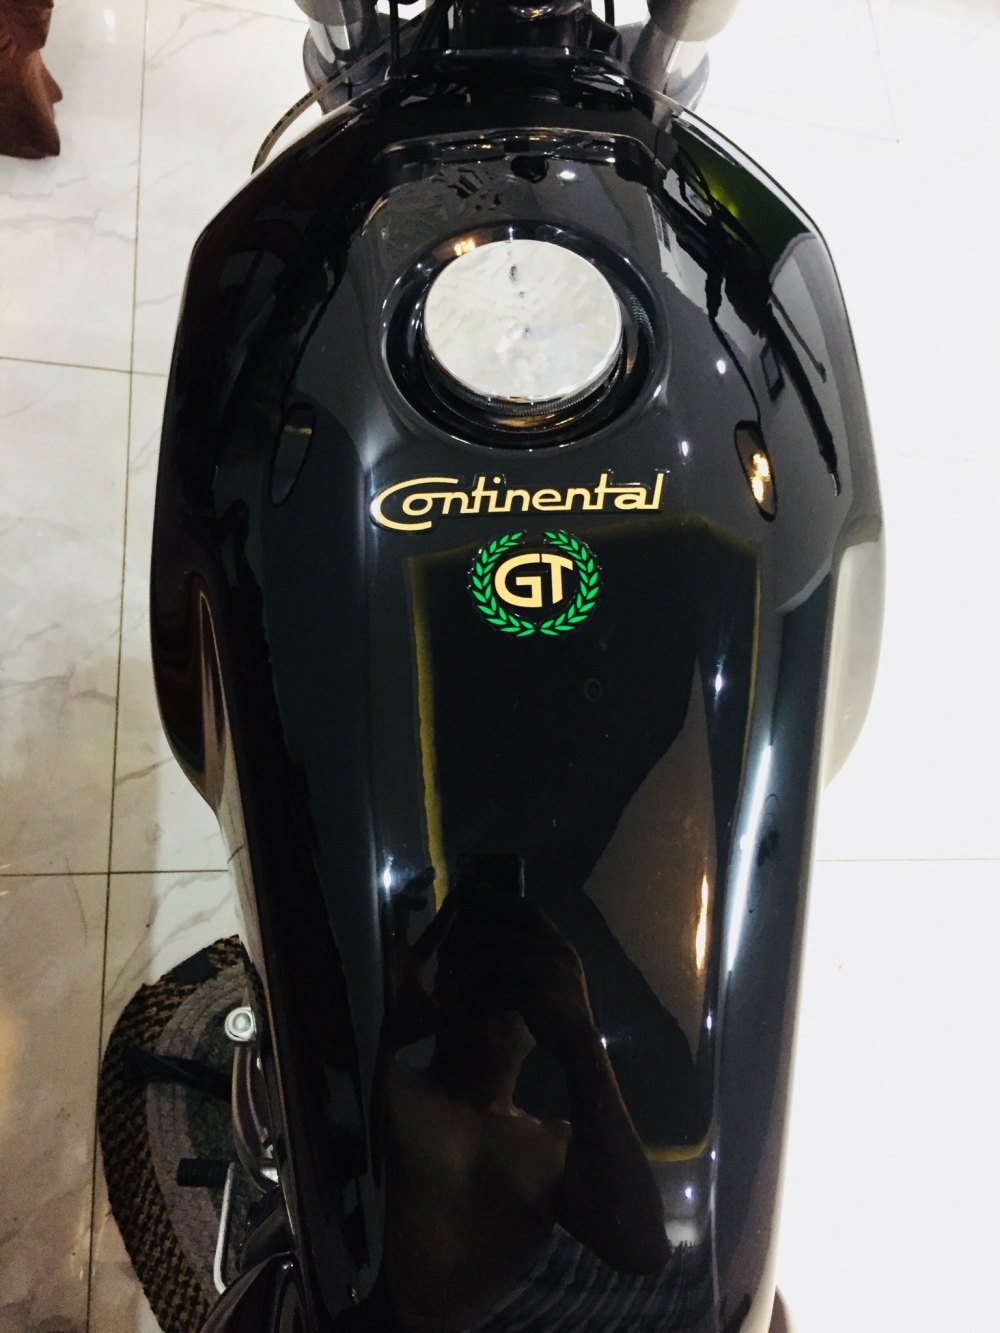 Xin phep ad Thanks ad Royal Enfield Continental GT535 caferacer HQCN 2017 Xe - 4